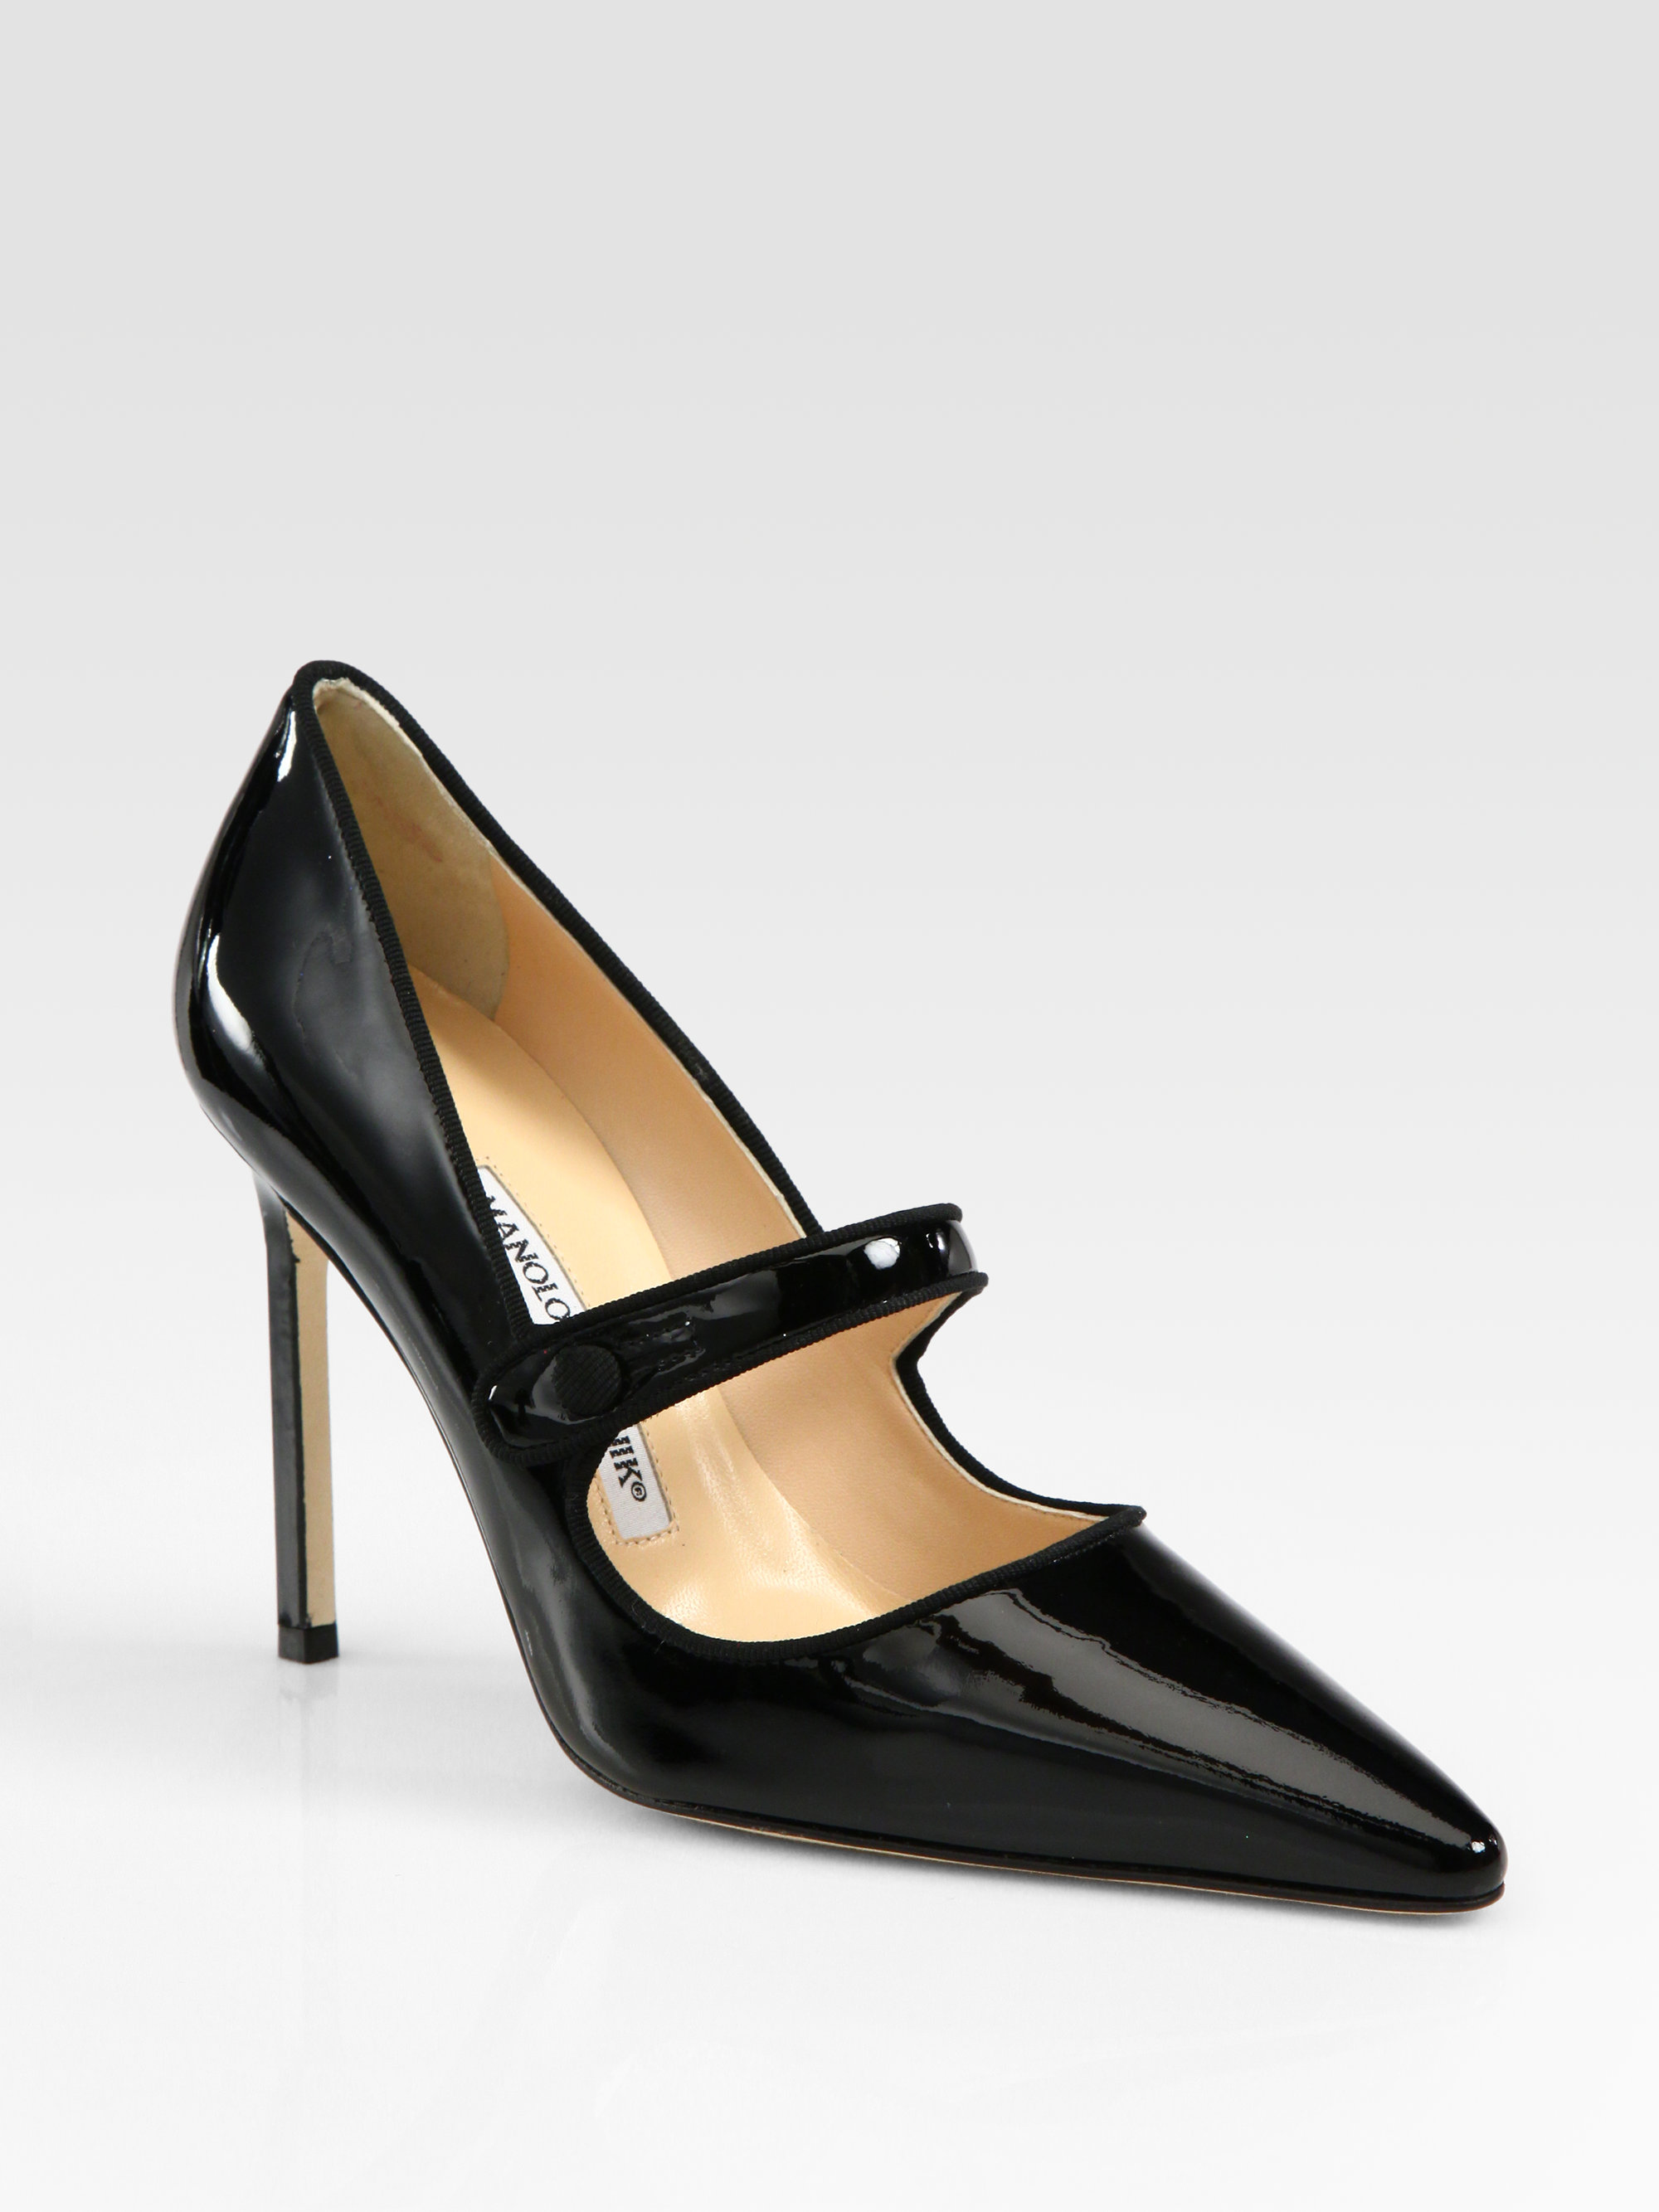 Lyst - Manolo Blahnik Campari Patent Leather Mary Jane Pumps in Black 3174a24877bb